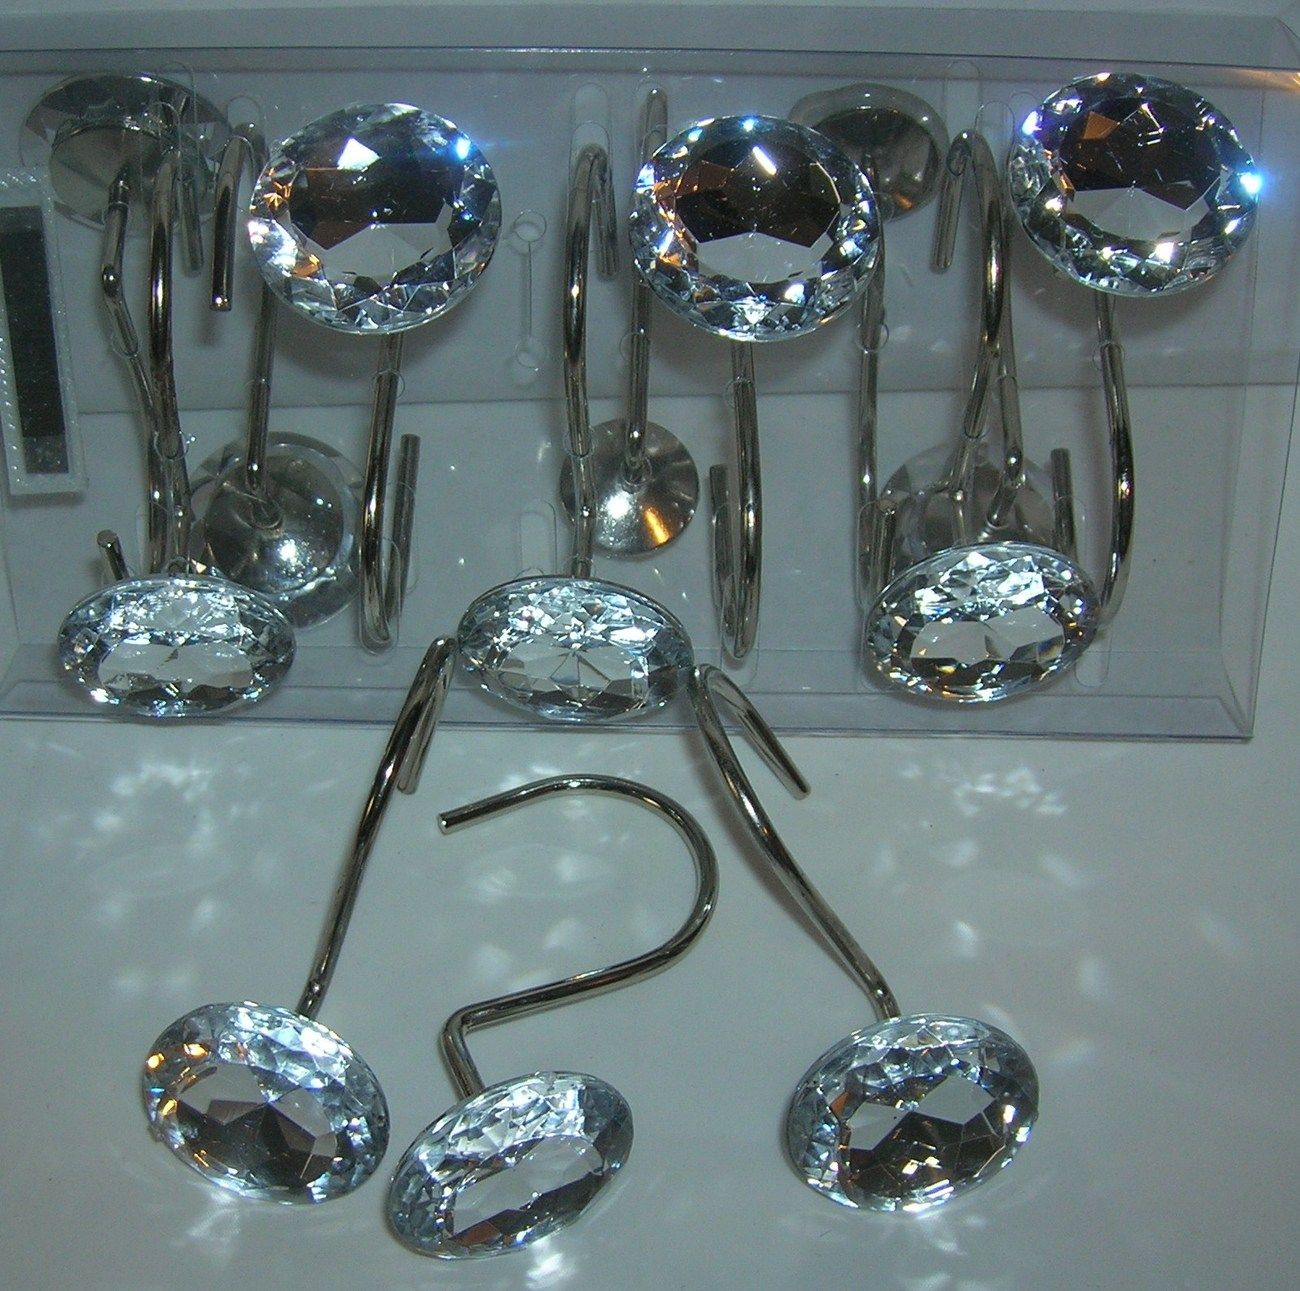 Shower Curtain Hooks That Sparkle